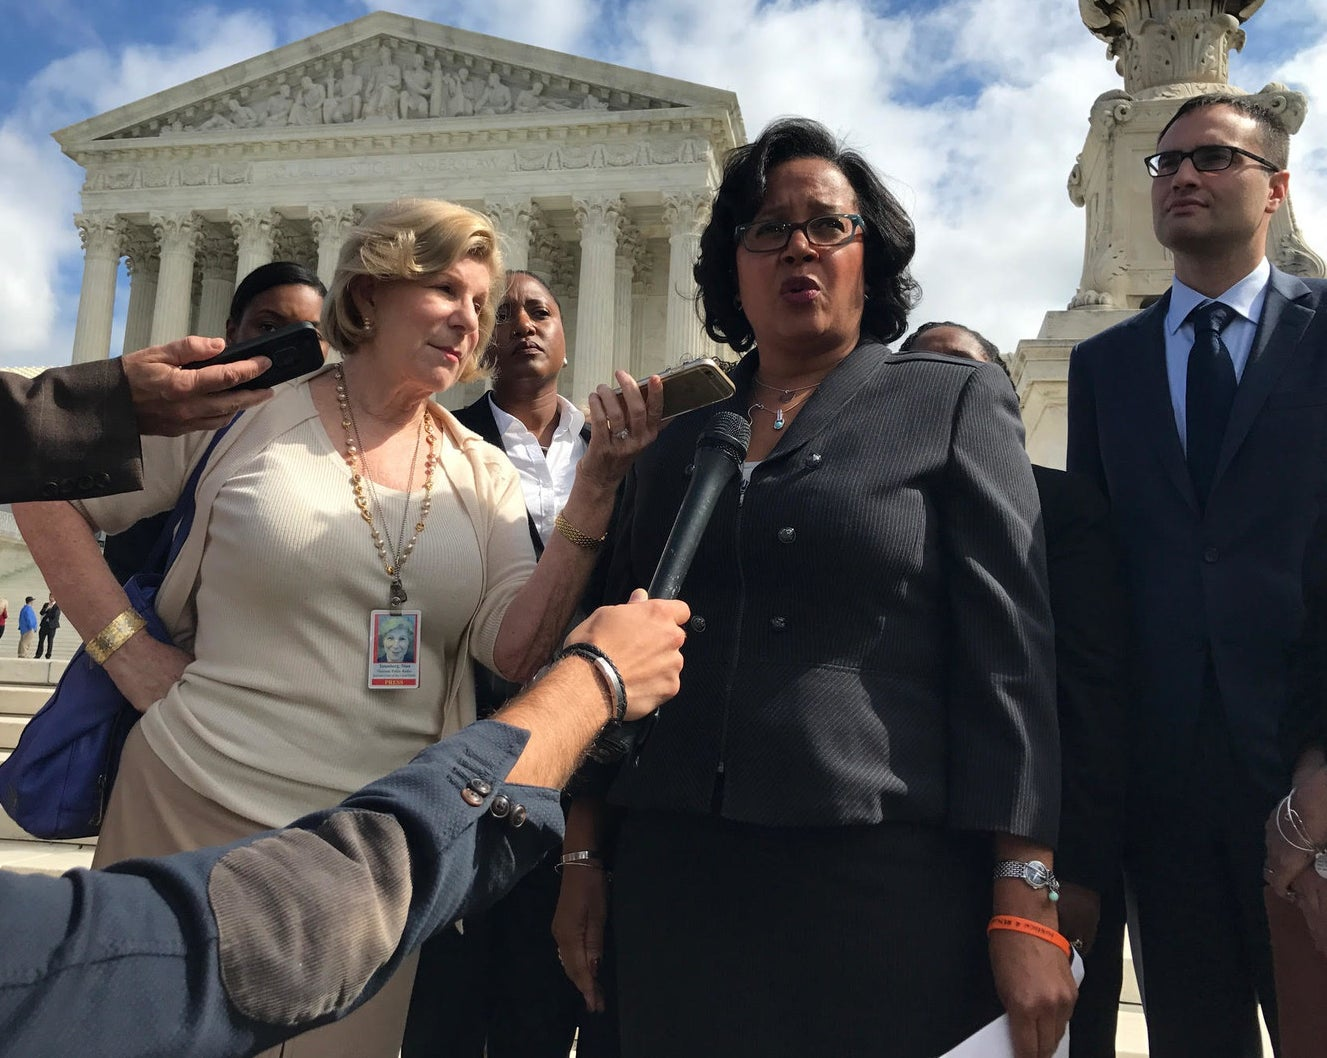 Christina Swarns, lawyer for Duane Buck, speaks to the media after arguments at the Supreme Court in Buck's case on Wednesday.